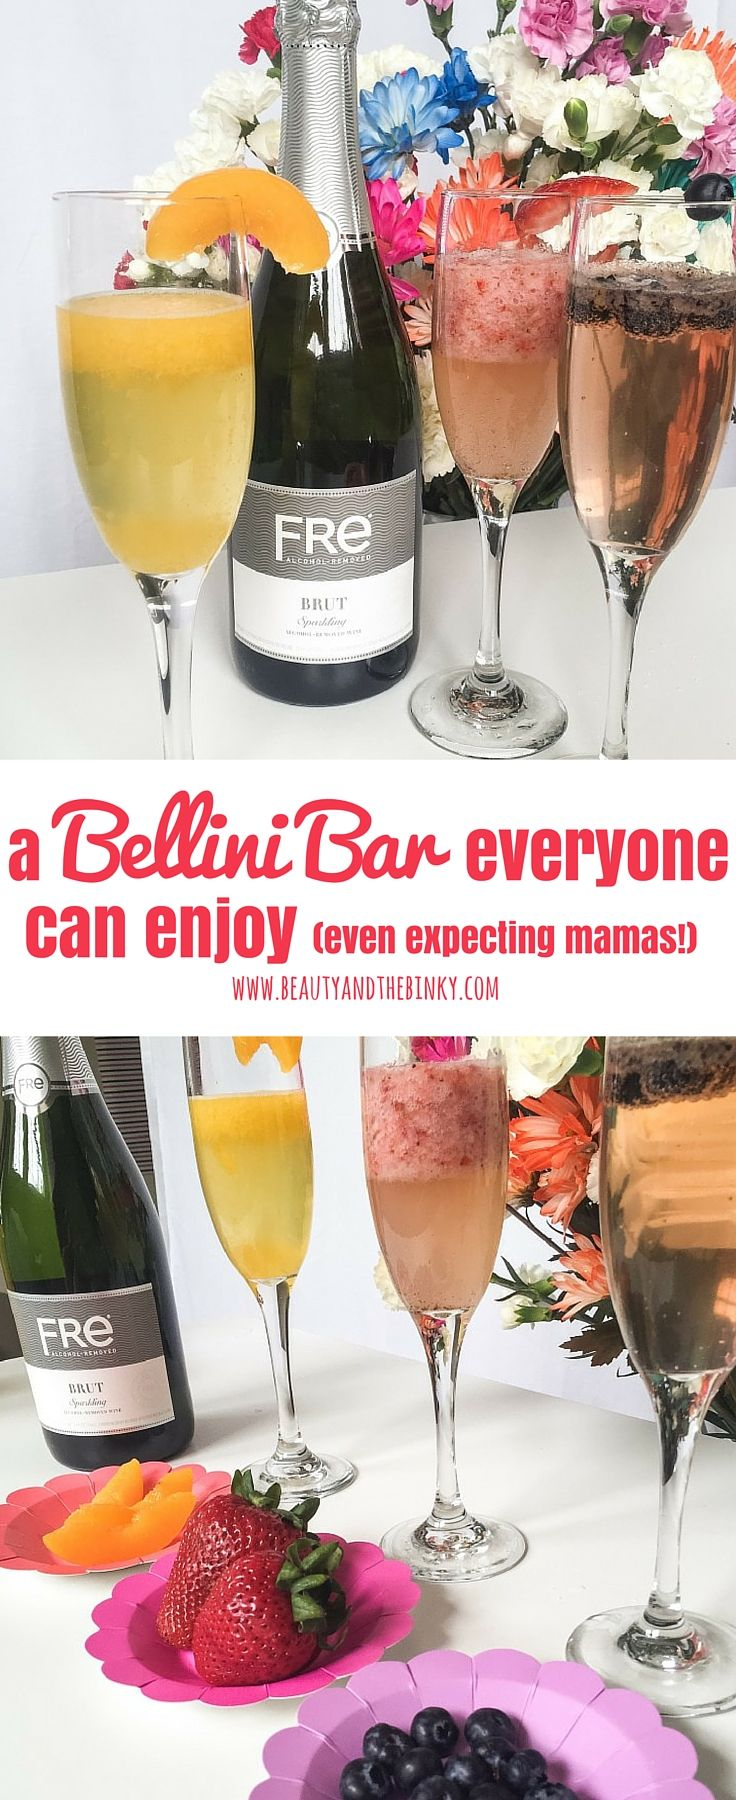 Msg 4 21+ | A Bellini Bar Everyone Can Enjoy (Even Expecting Mamas!) | Beauty and the Binky blog | #ad, #sponsored, #MomsSipSmart, mimosas, cocktails, mocktails, alcohol-free wine, alcohol-removed wine, wine for pregnancy, wine for moms, events, special occasion, baby shower, baby shower bellinis, bellini bar, champagne, champagne for moms, champagne for pregnancy, fruit bar